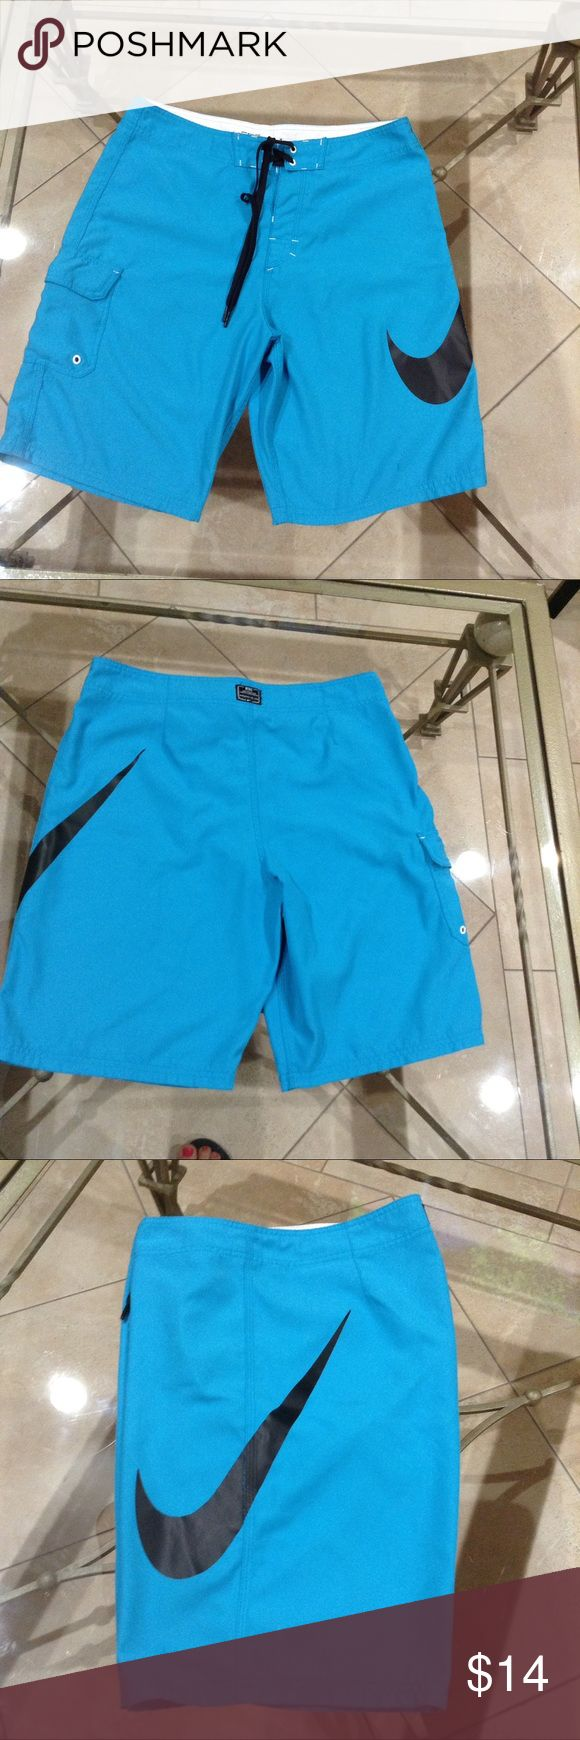 🌸🌺NIKE short 🌺🌸NIKE swim shorts size 32 small hole shows the photo 6 Shorts